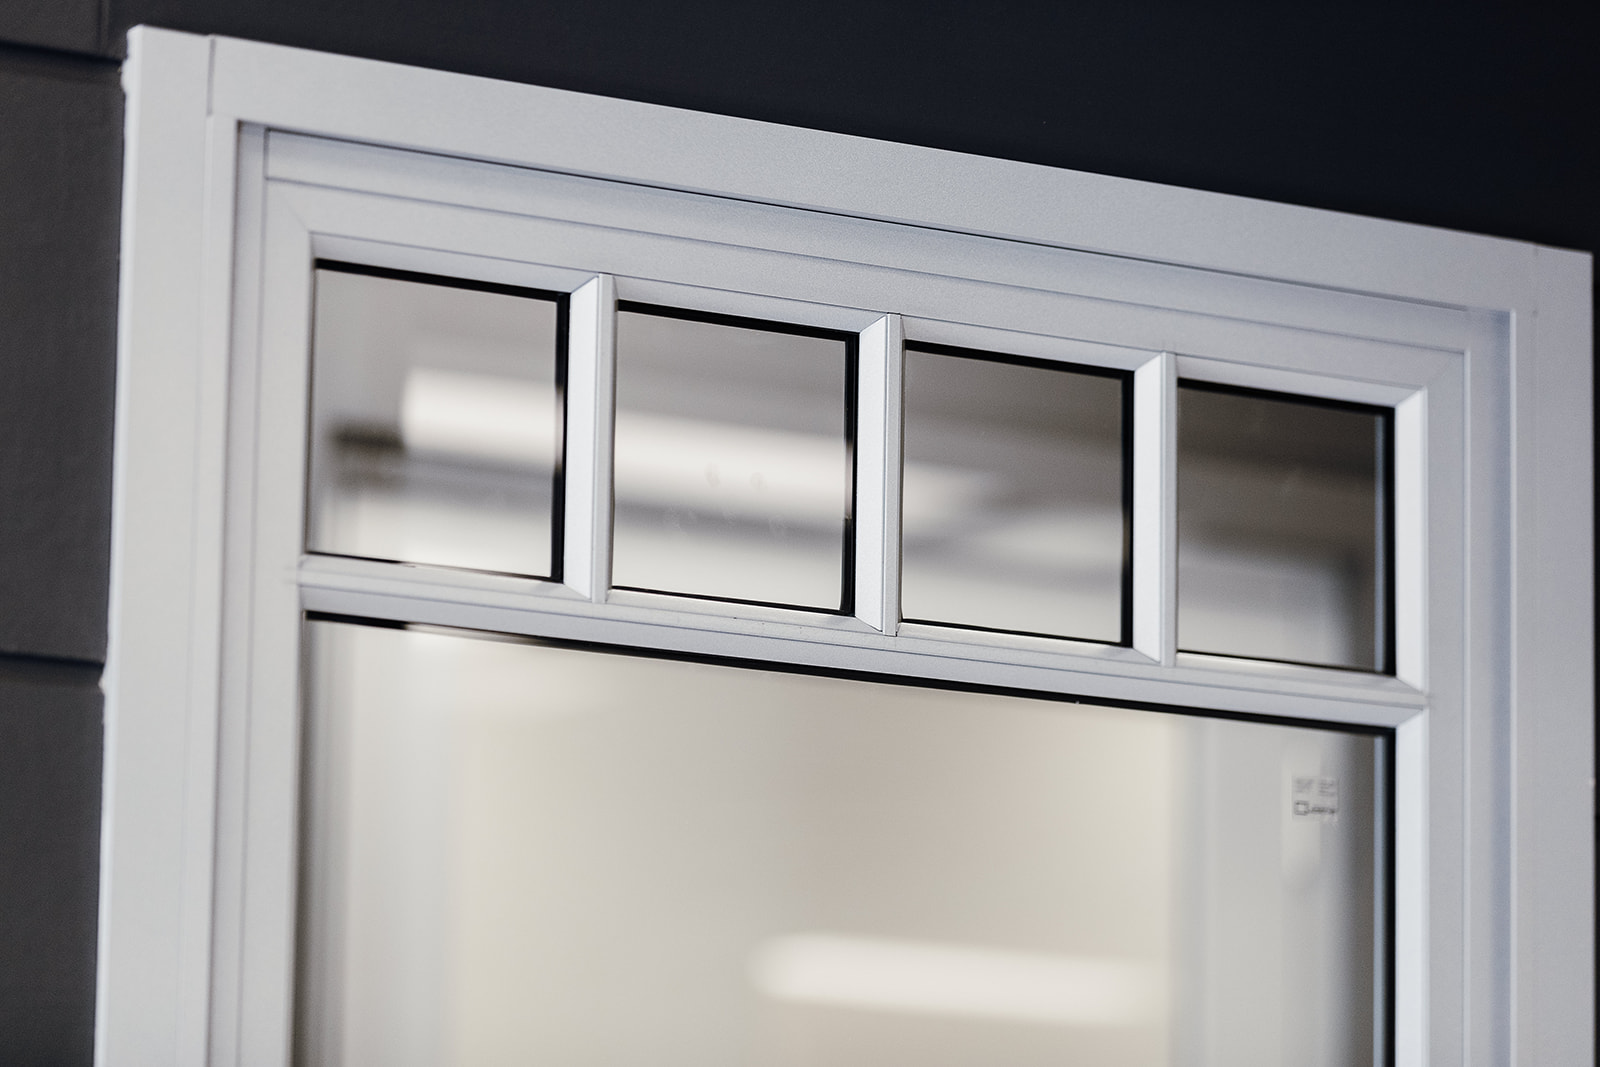 Paragon double hung window with glazing bars